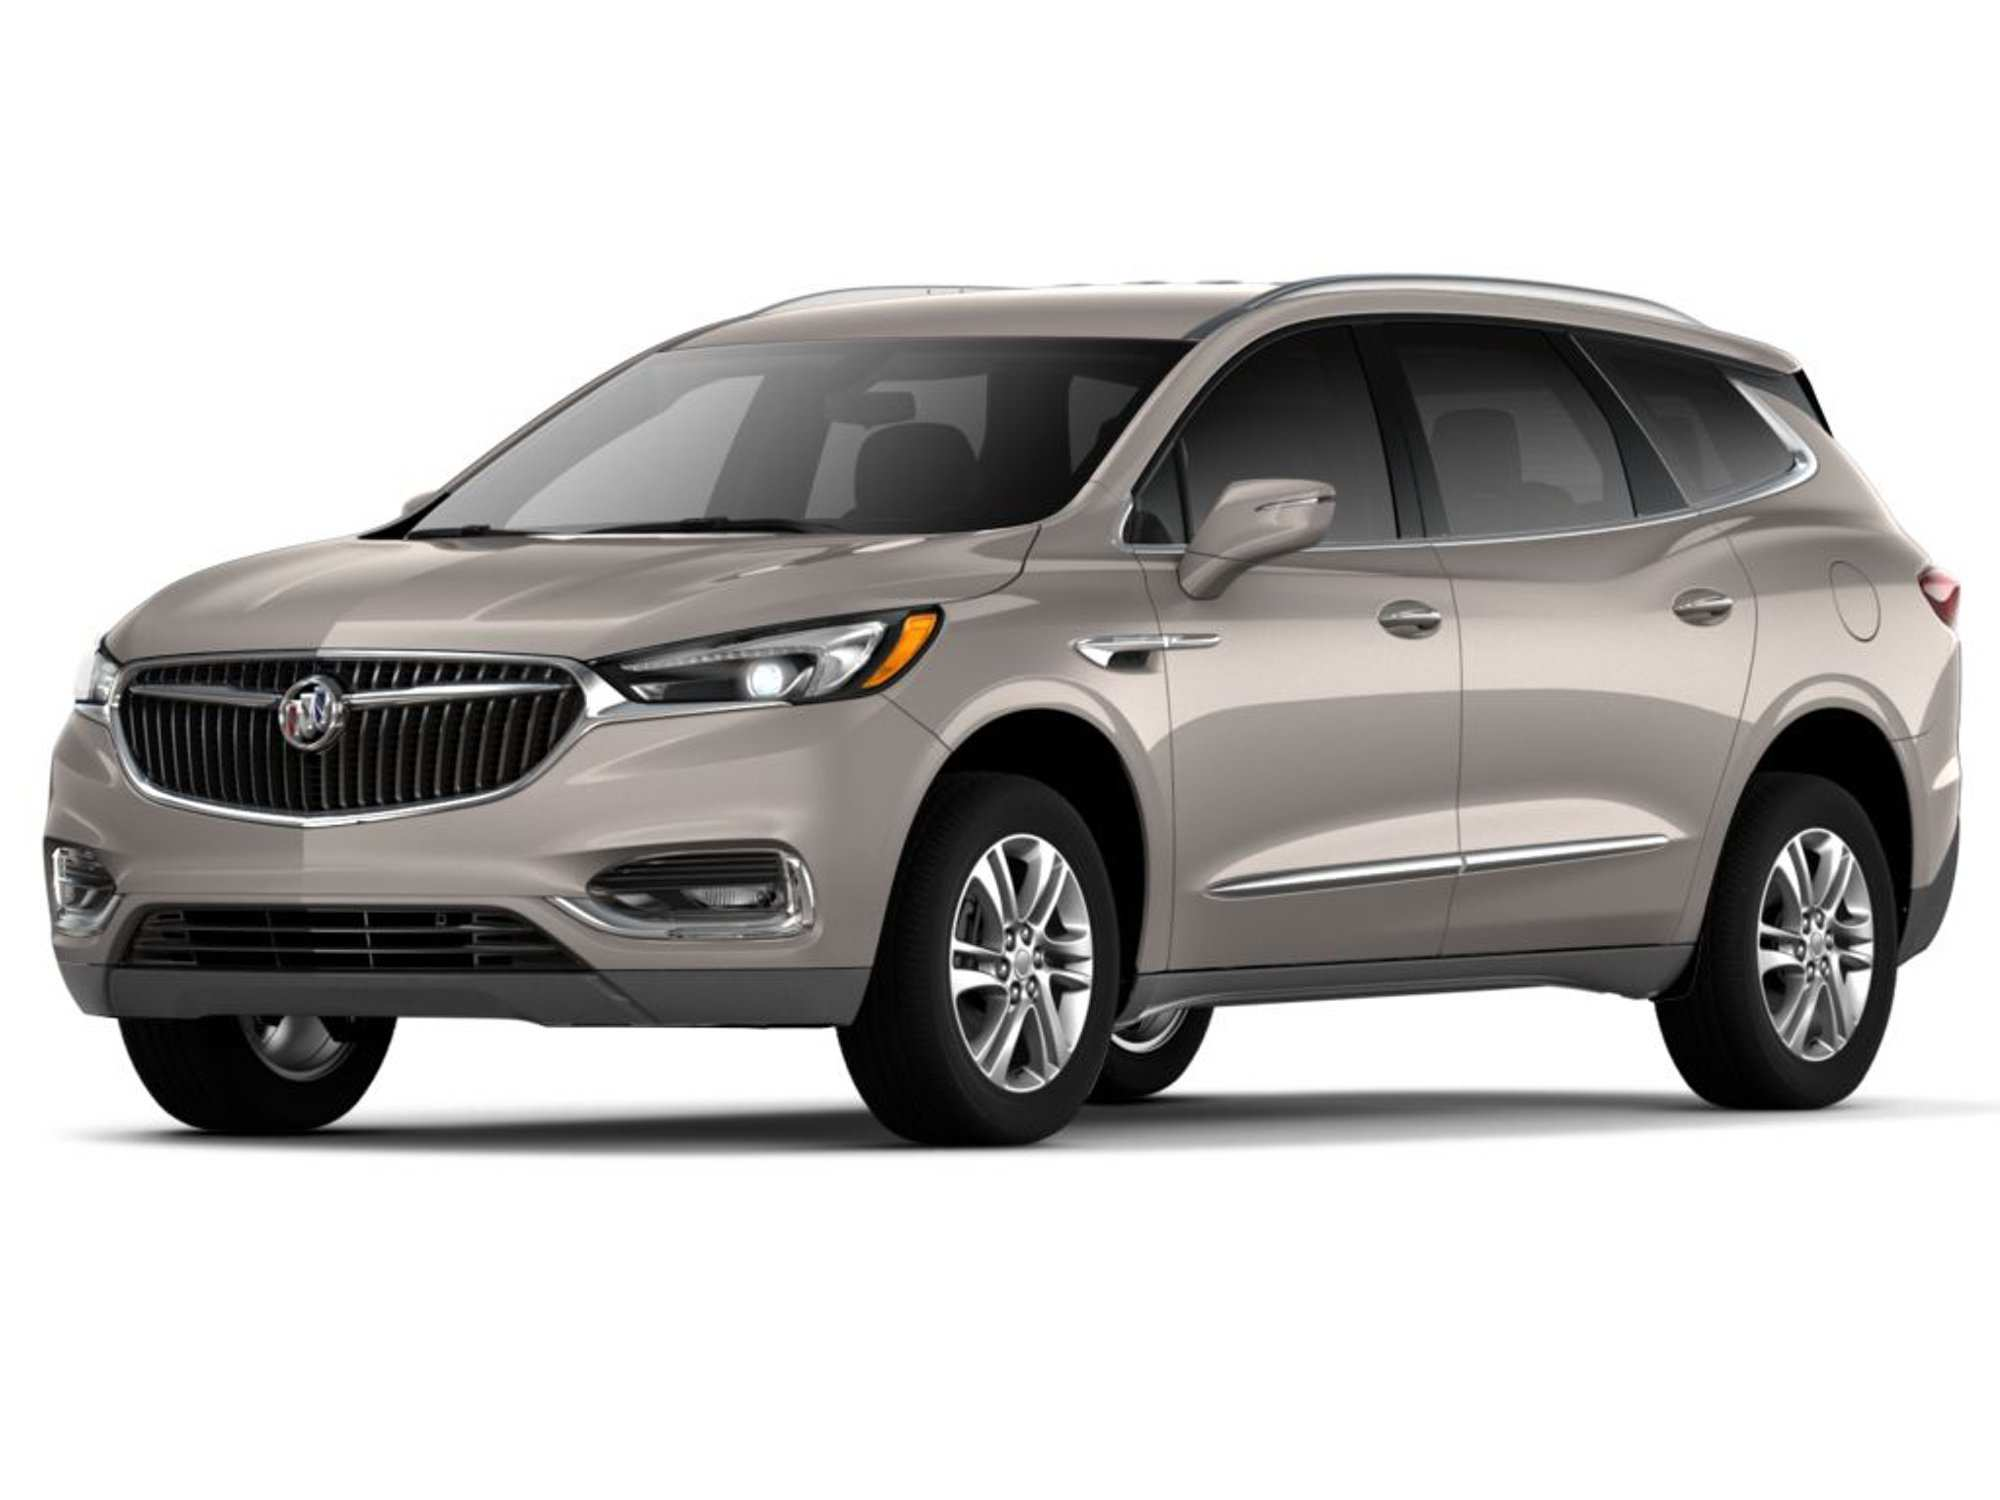 79 Concept of 2020 Buick Enclave Colors Redesign and Concept by 2020 Buick Enclave Colors